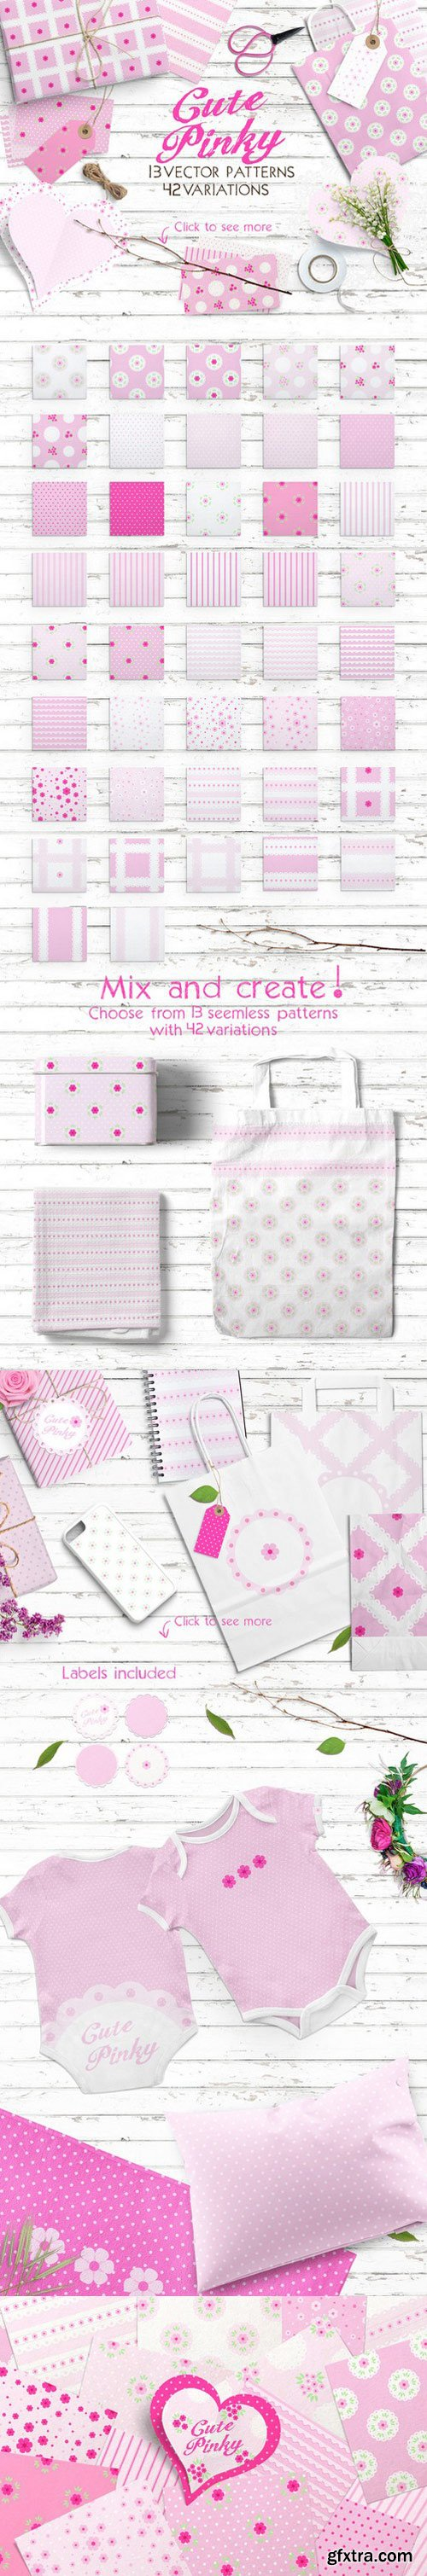 CM - Cute Pinky Patterns Pack 735441